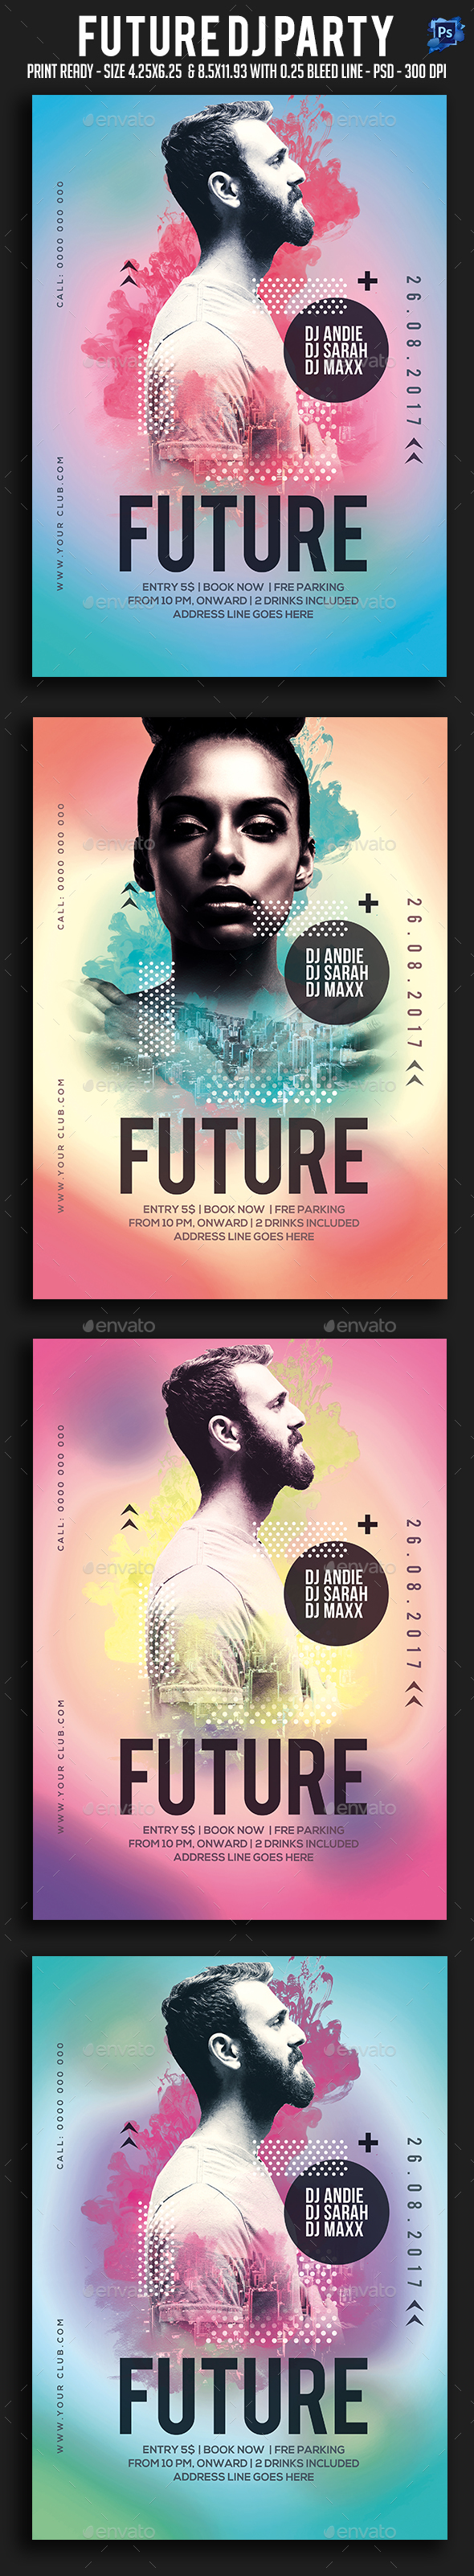 Future Dj Party Flyer - Clubs & Parties Events